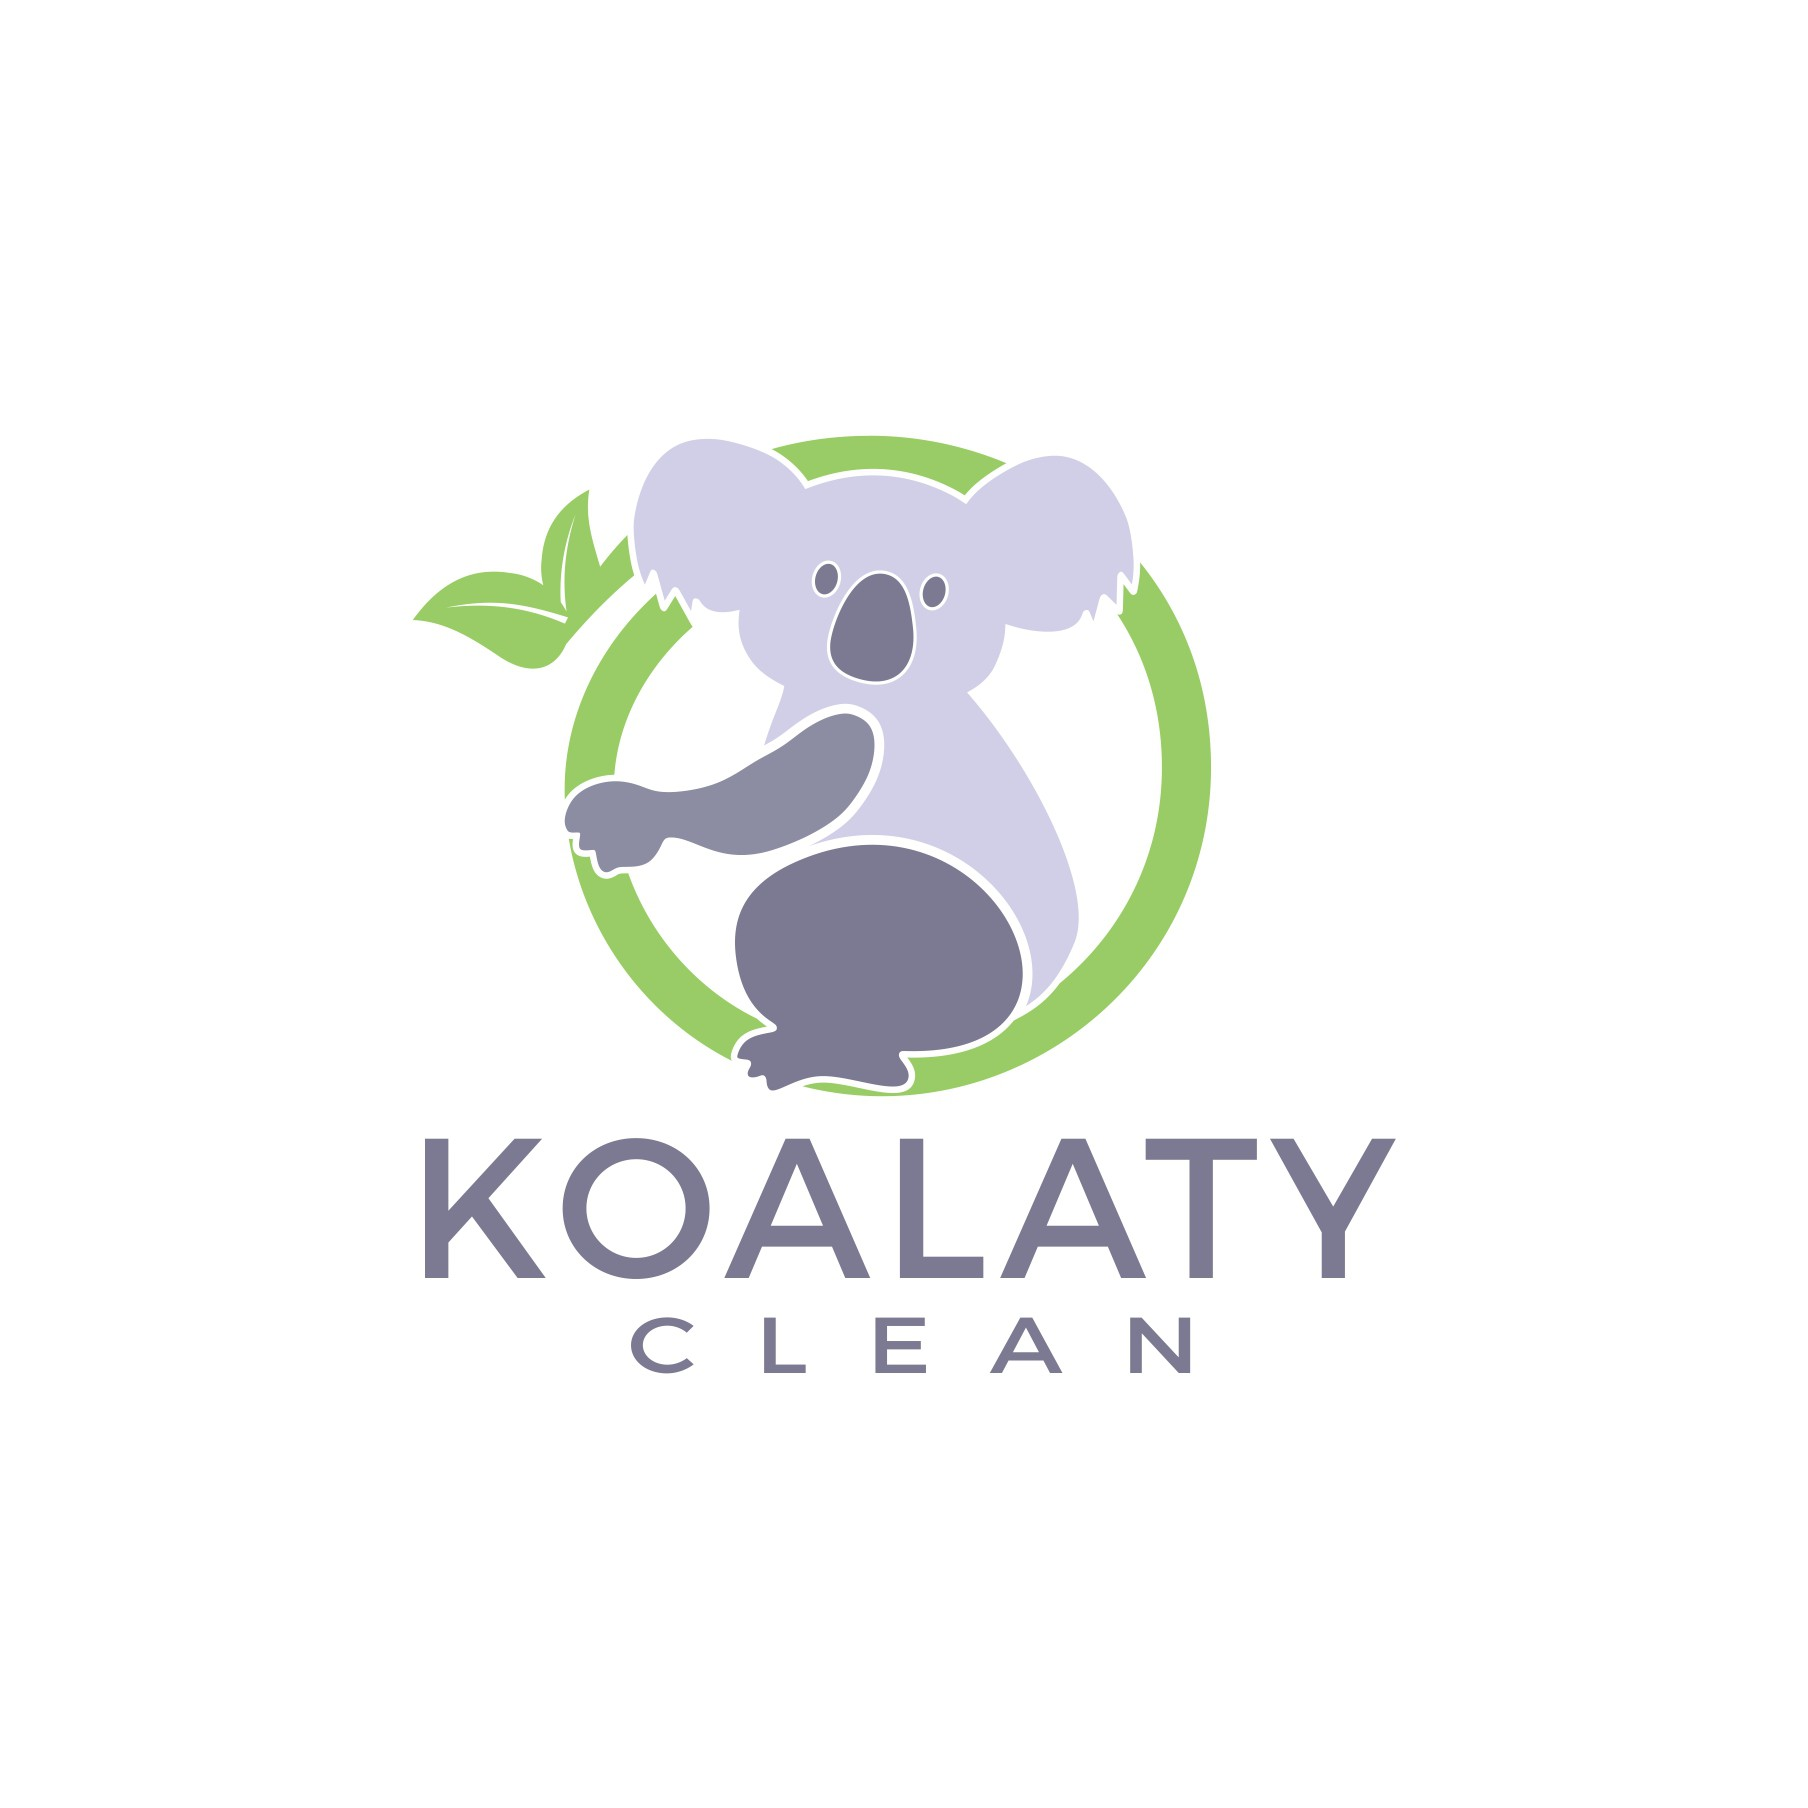 Design a classic and fun logo for Koalaty Clean!